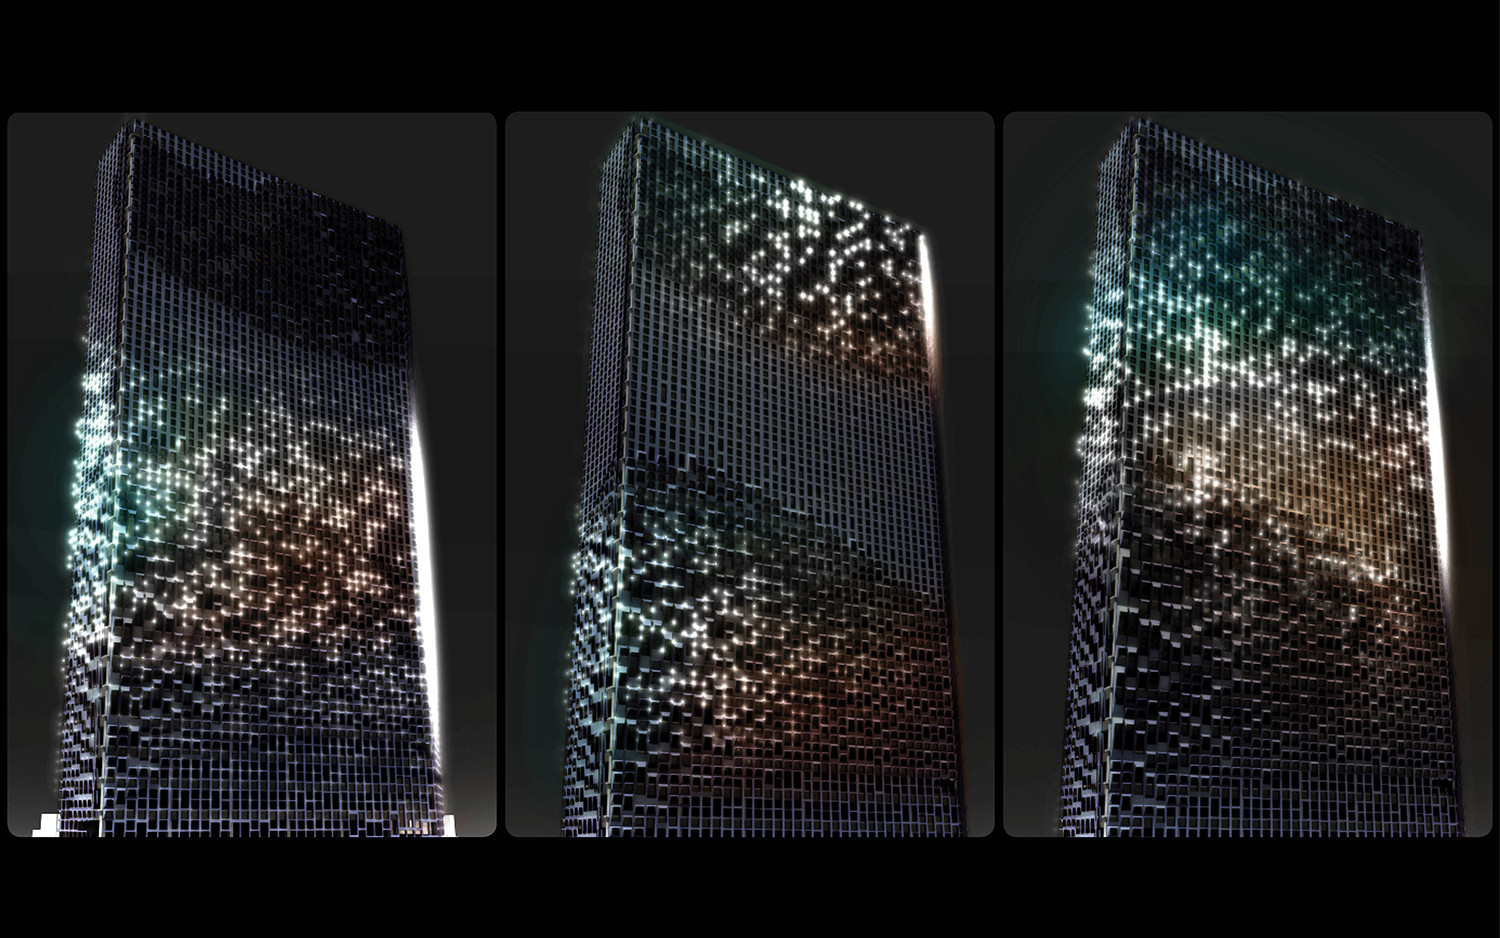 UNStudio Rev&s Hanwha Offices with Shimmering LED FacadeFacade Lighting . Image Courtesy of UNstudio & Gallery of UNStudio Revamps Hanwha Offices with Shimmering LED ...